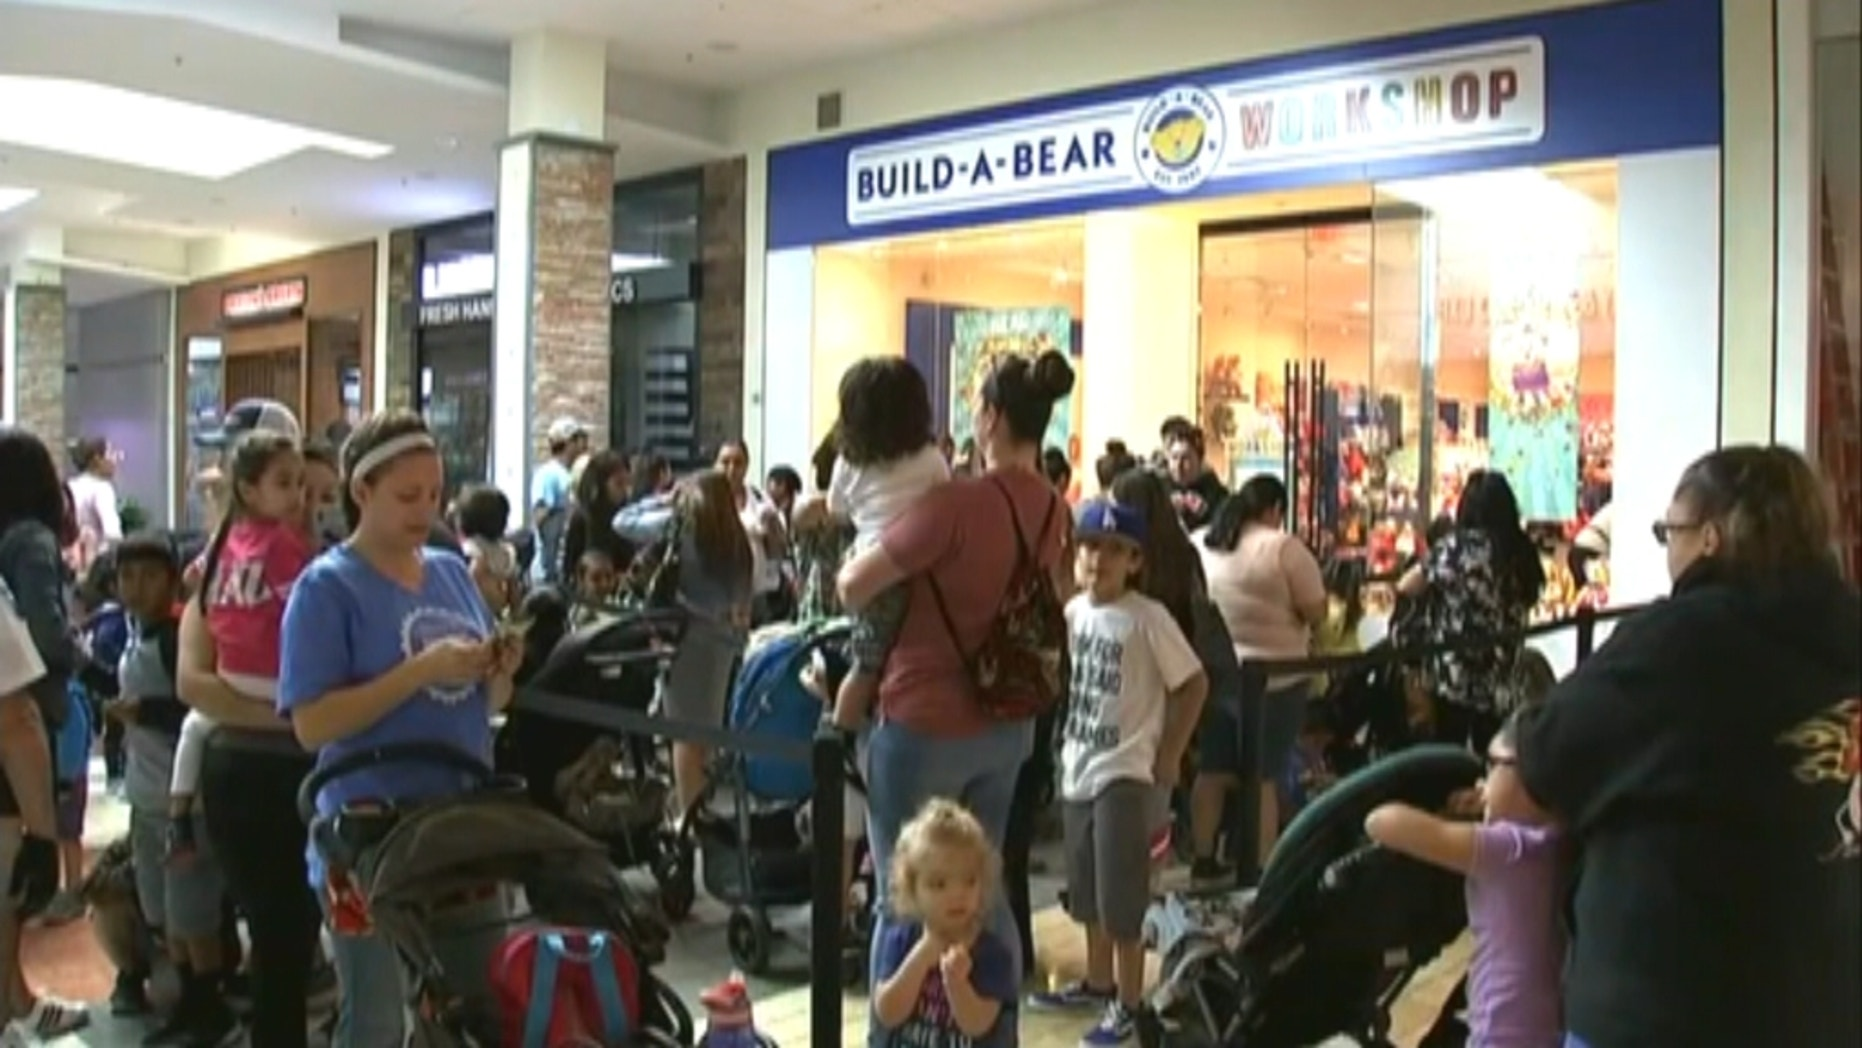 Parents on Thursday waited in line with their children for hours to get their hands on a discounted stuffed toy. (KGO via NNS)